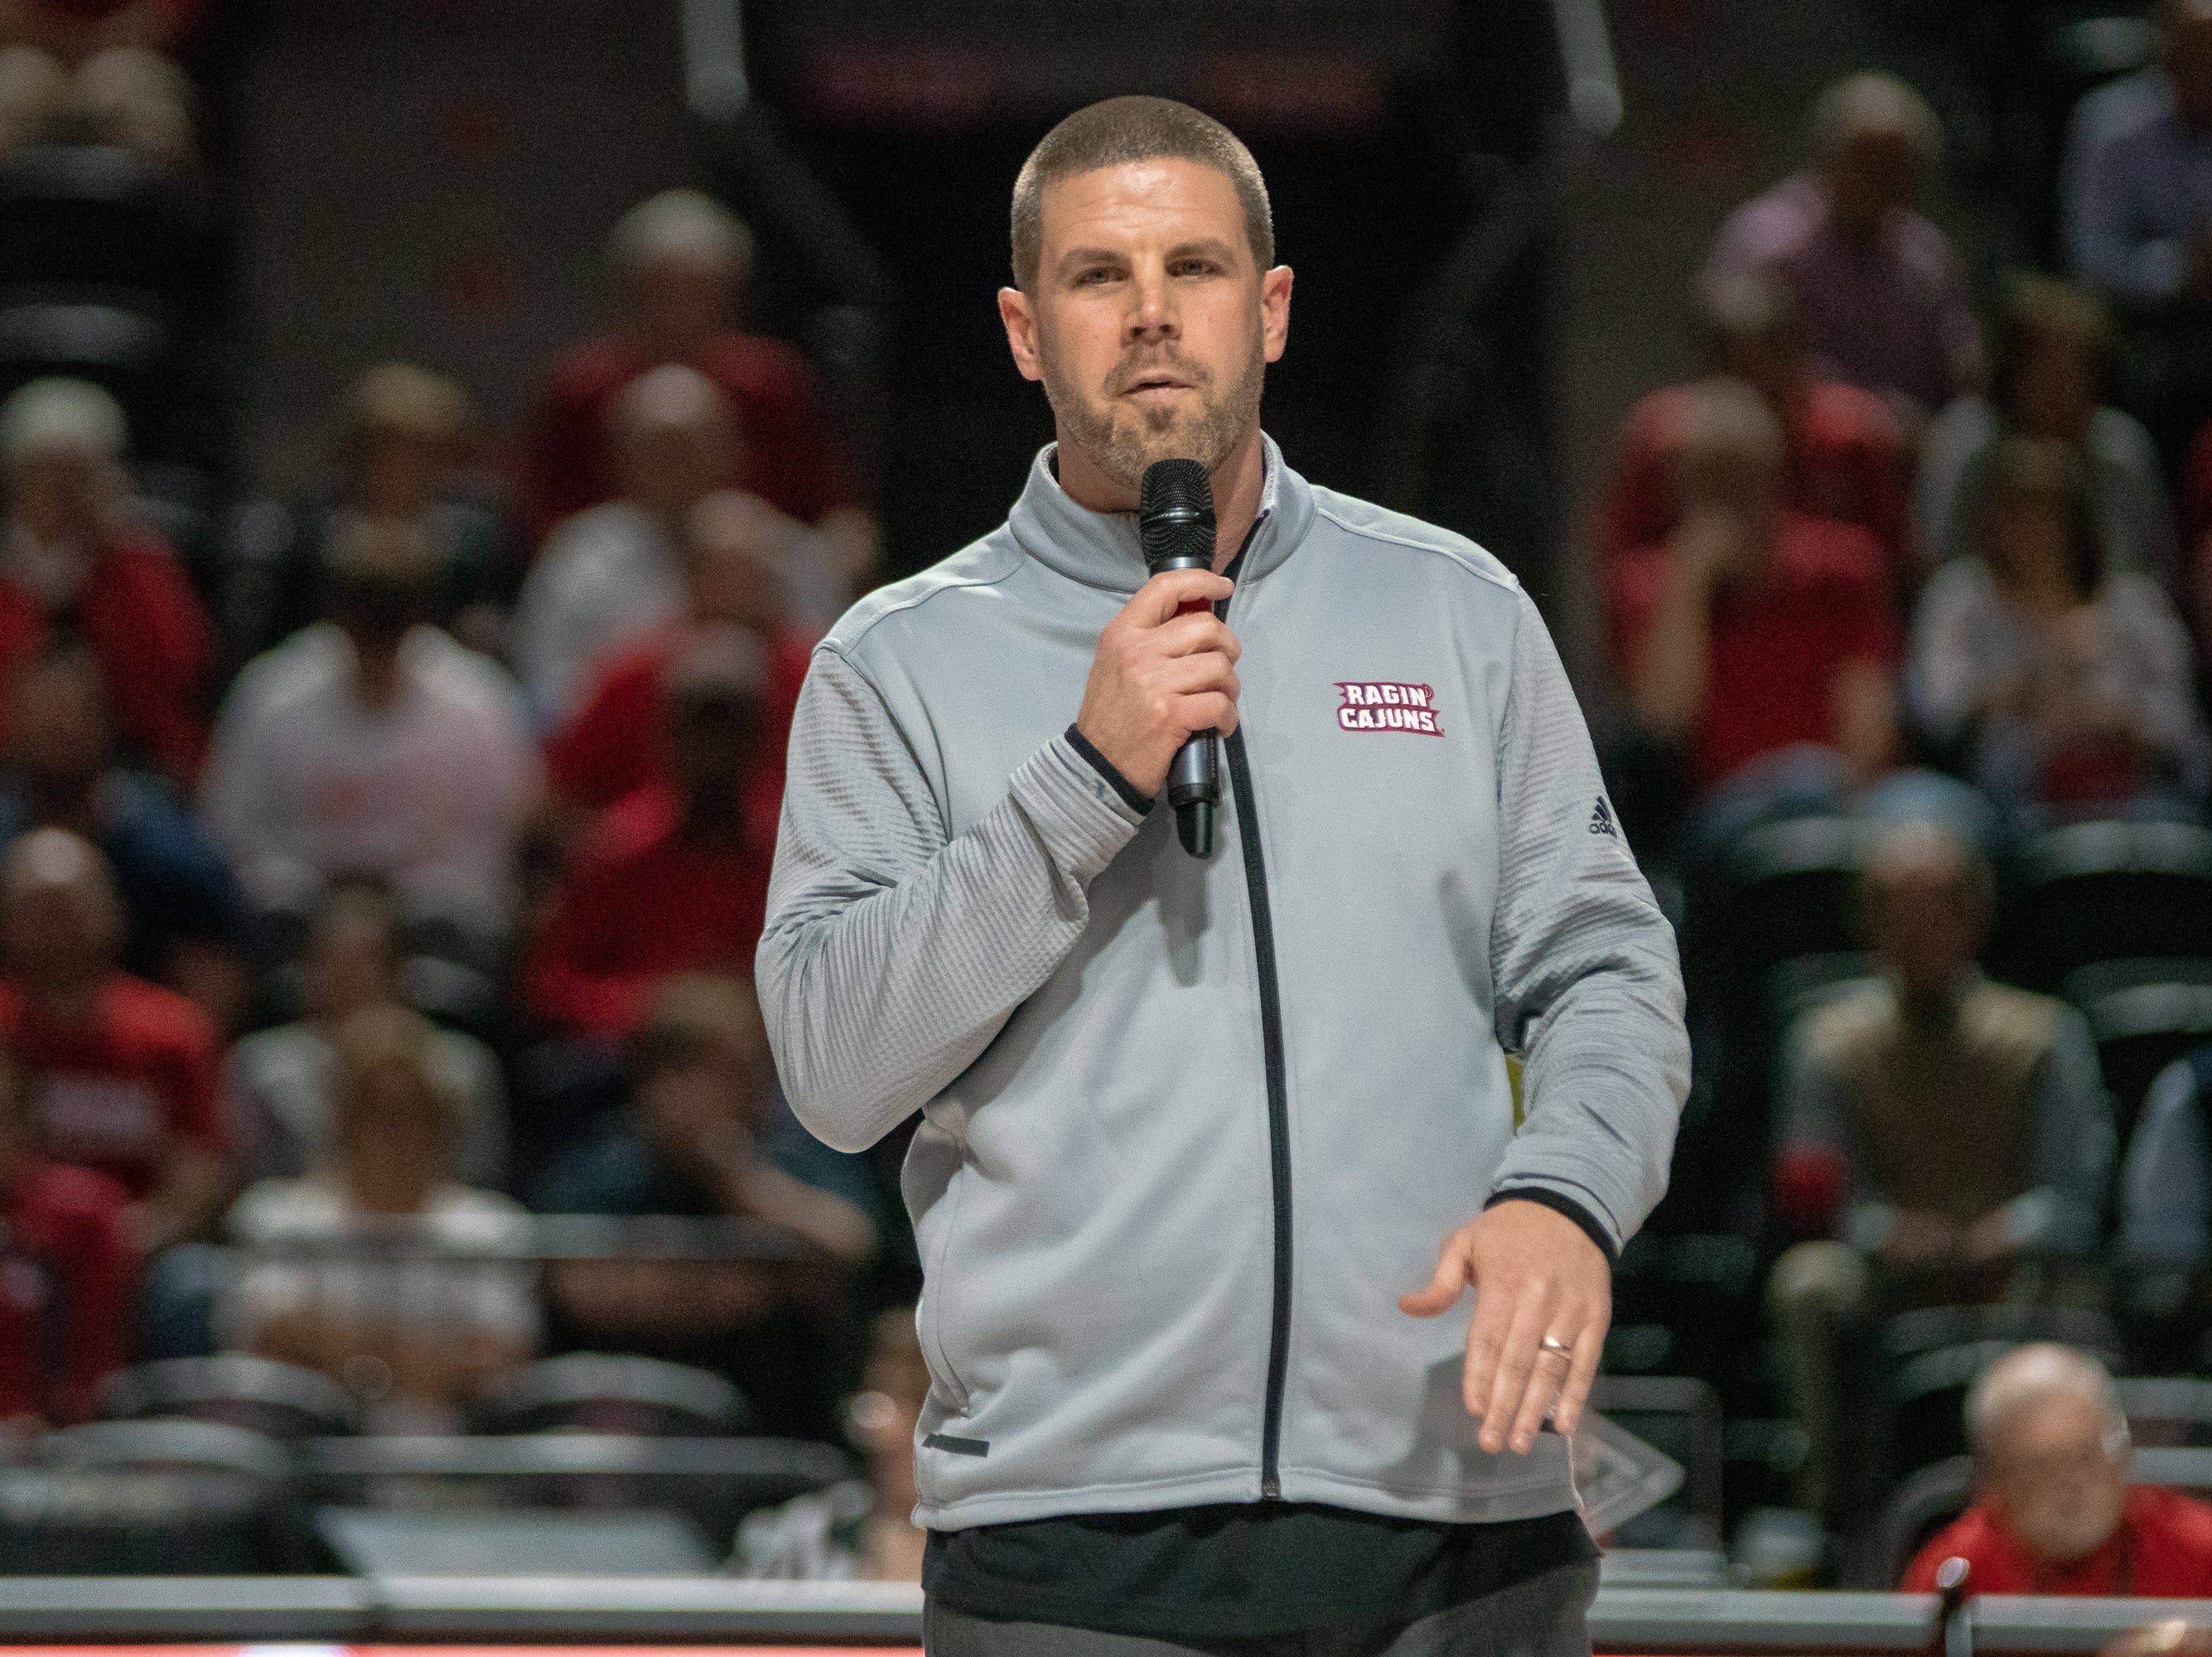 UL head football coach Billy Napier addresses the crowd at half-time as the Ragin' Cajuns take on the Georgia Southern Eagles at the Cajundome on Feb. 6, 2019.